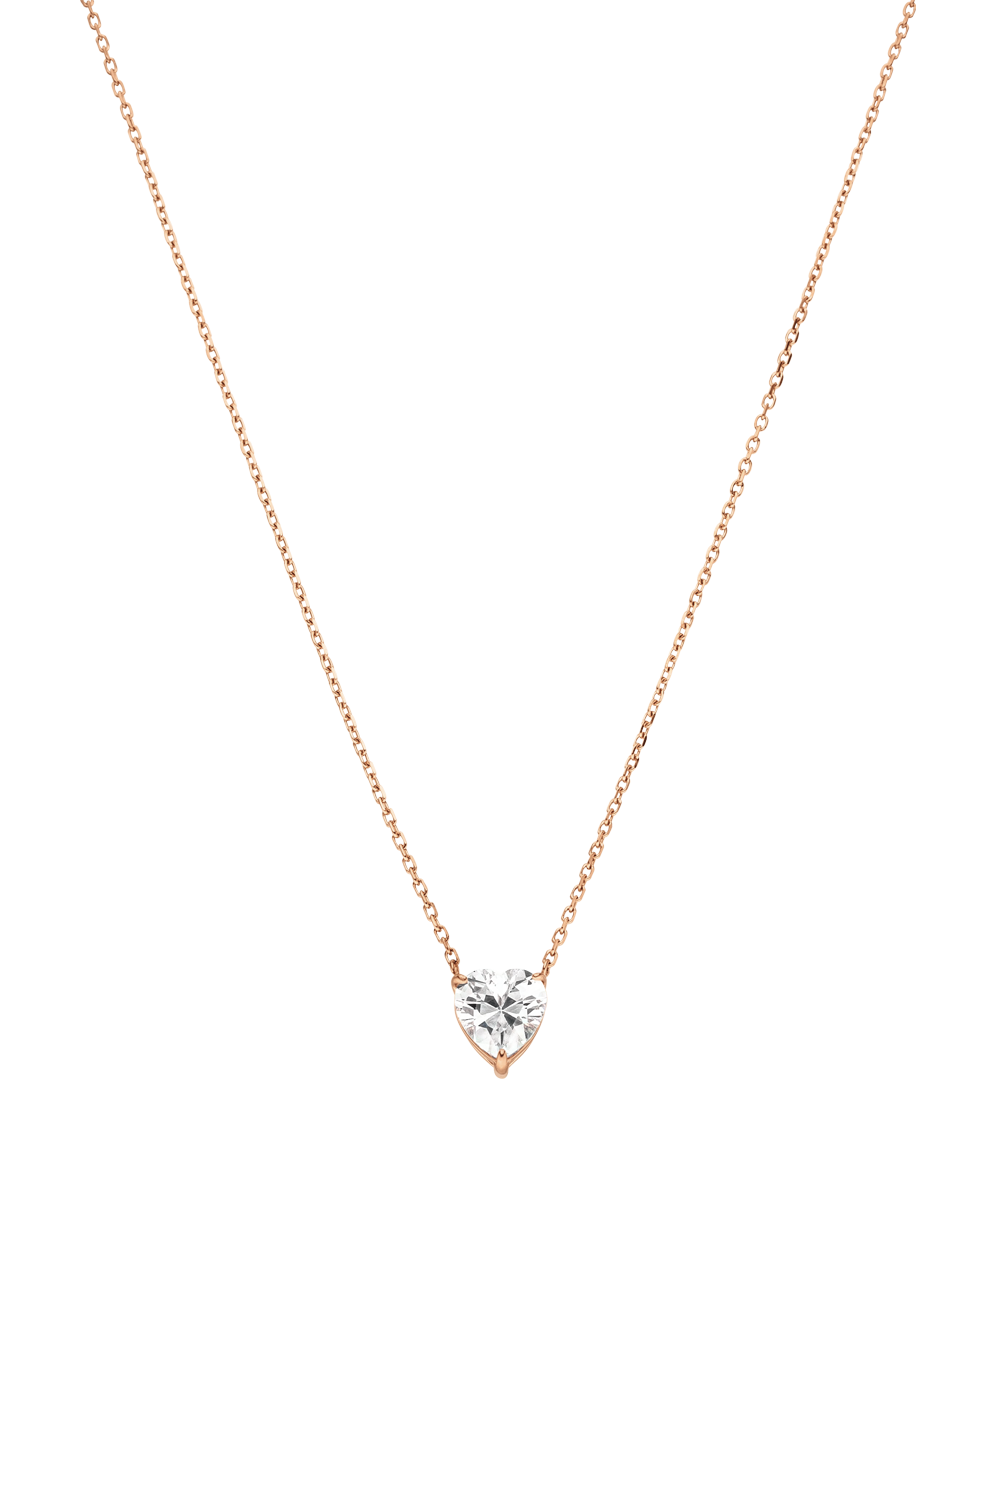 DIAMOND HEART NECKLACE ROSÉGOLD